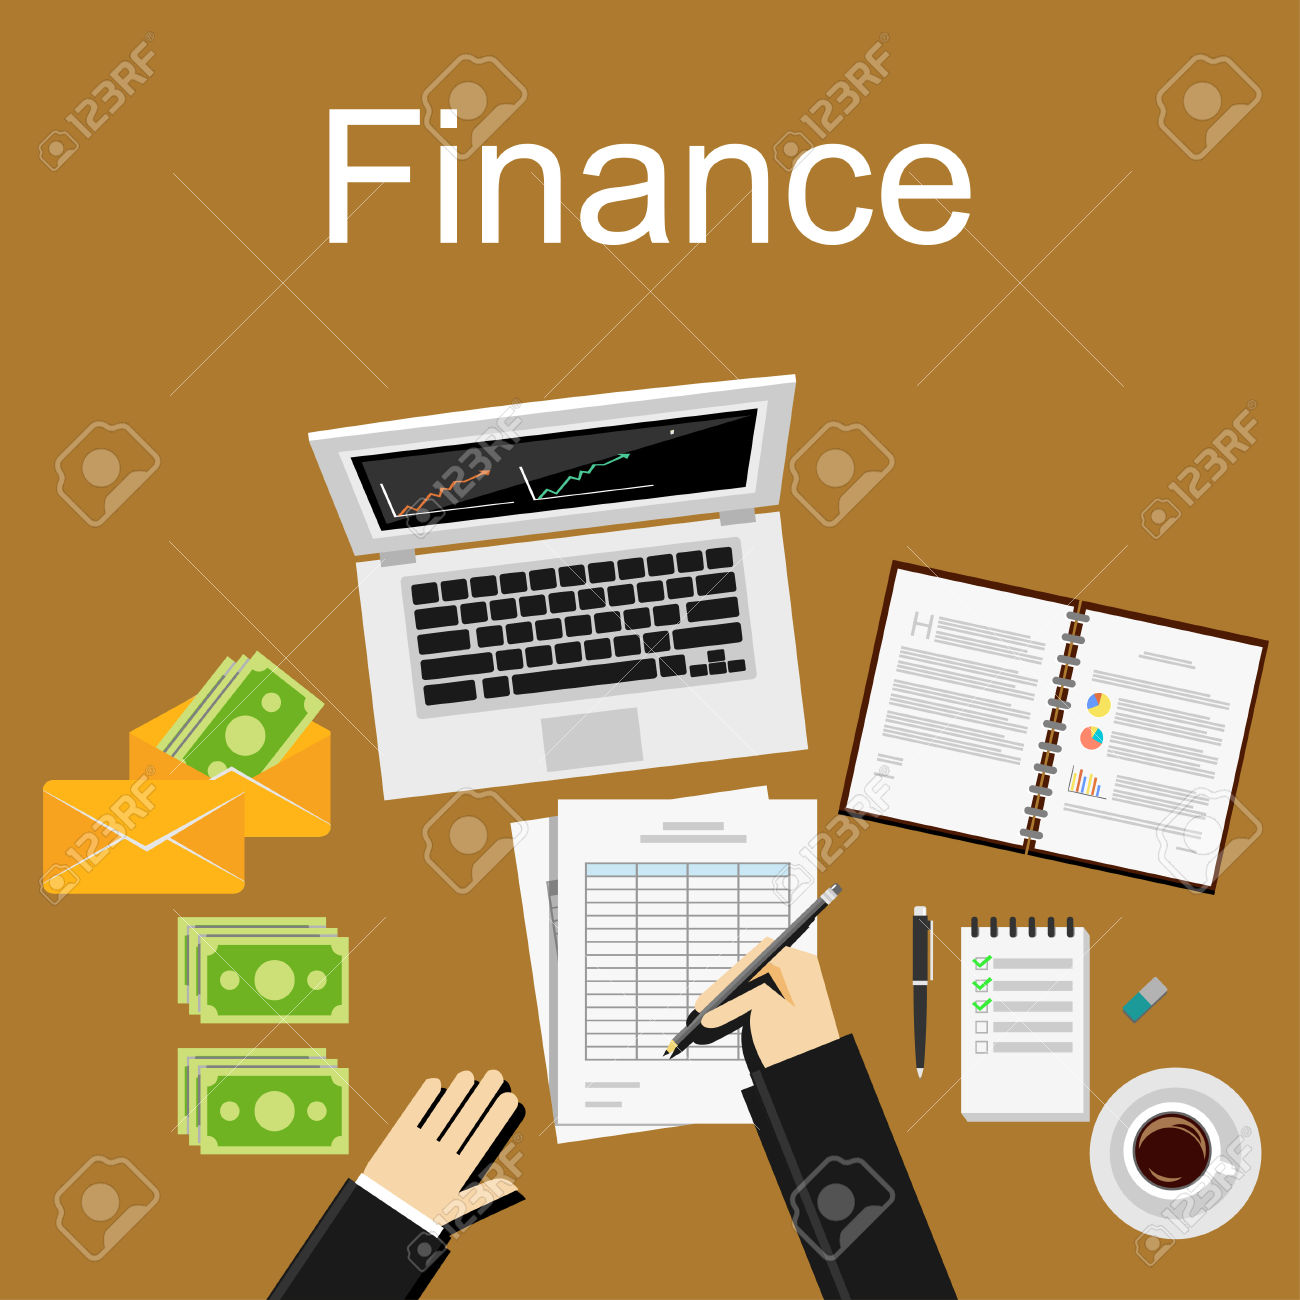 Finance Illustration. Flat Design Illustration Concepts For.